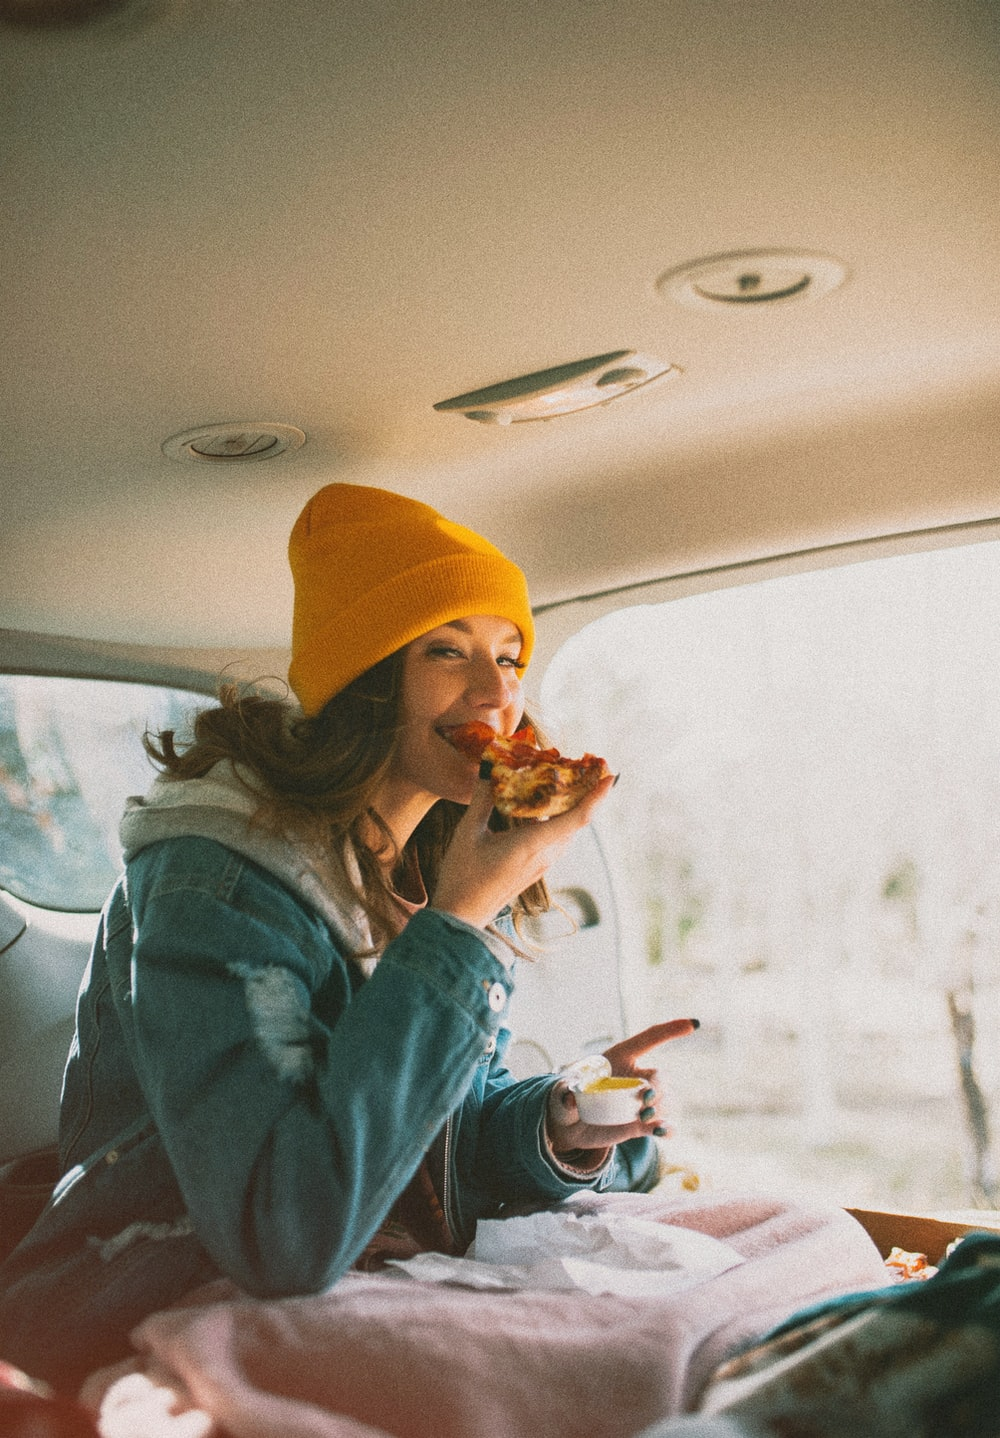 woman eating pizza inside vehicle